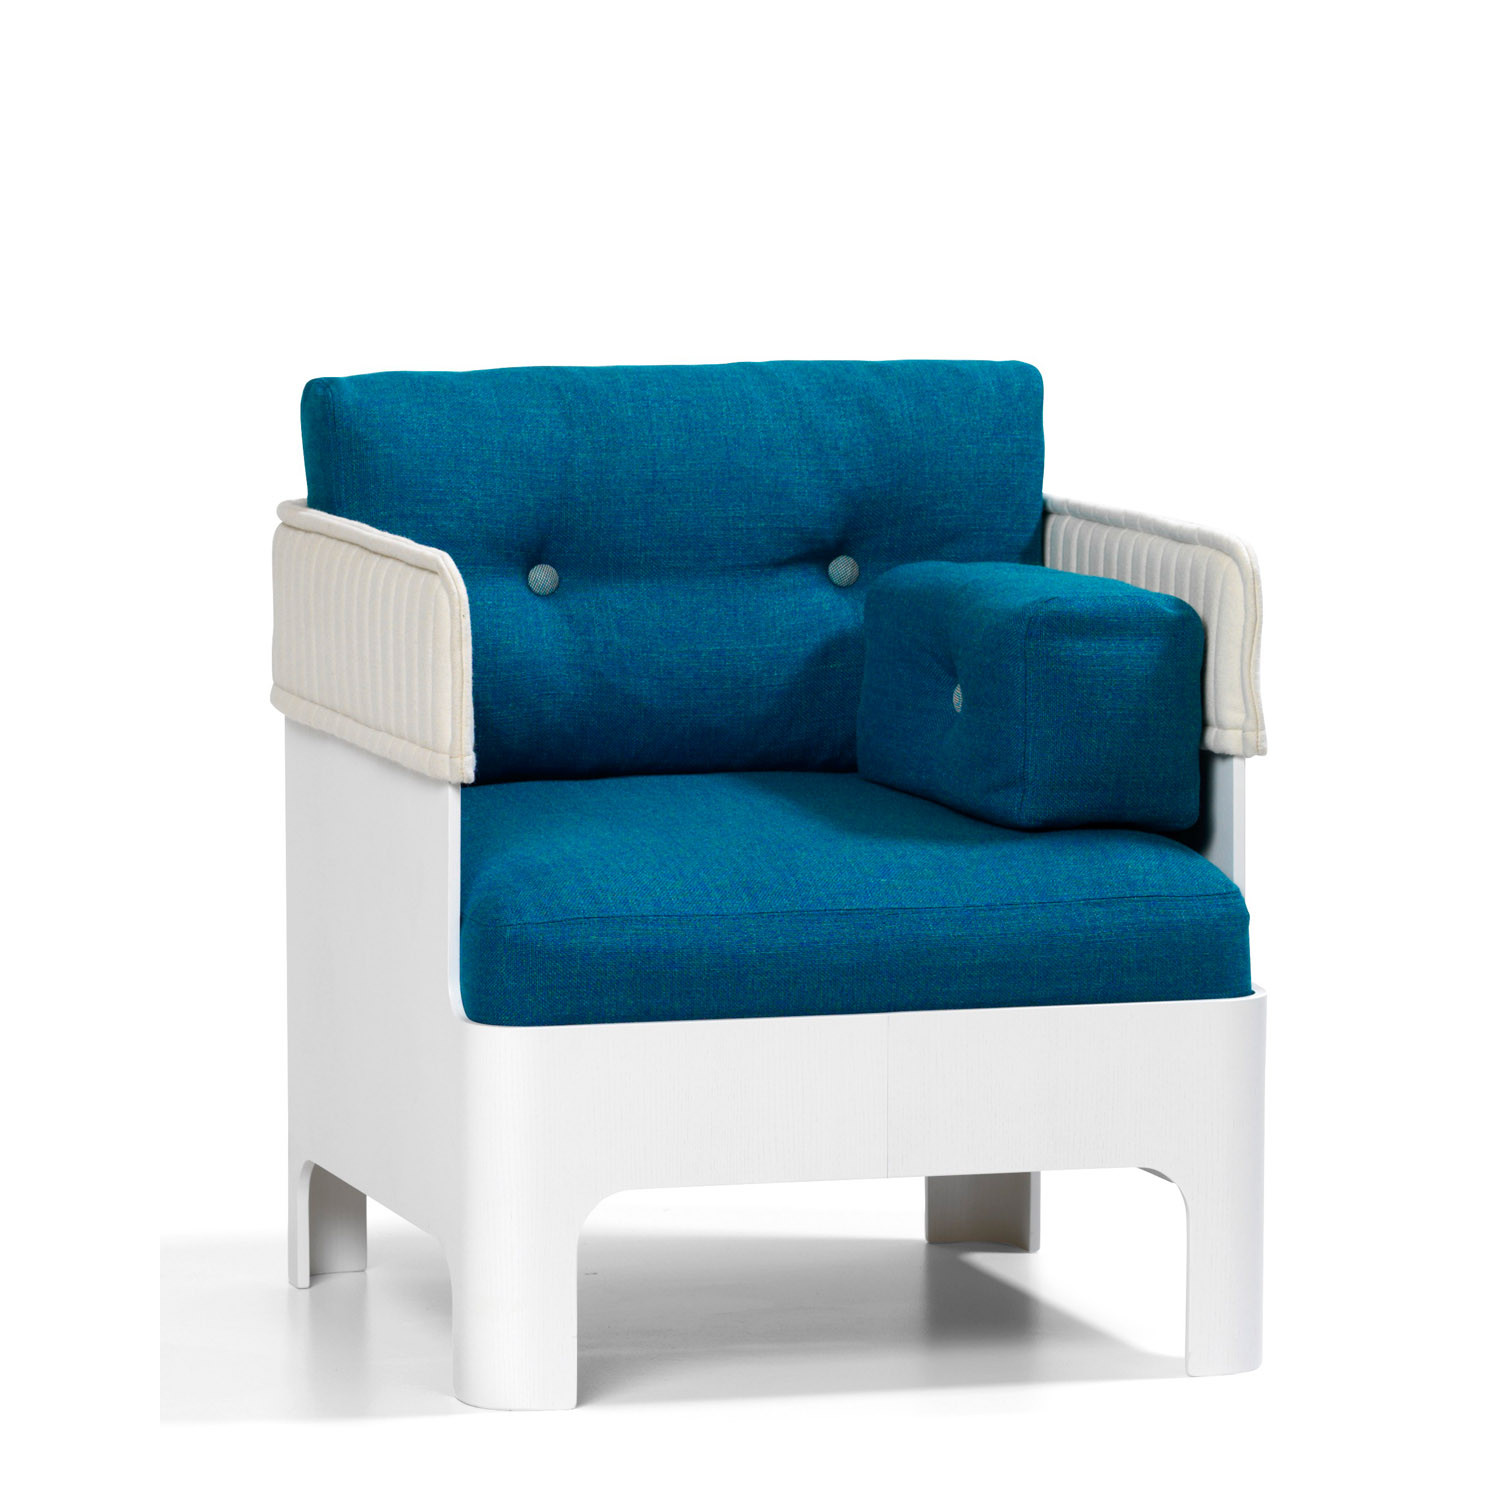 Koja S51L Easy Chair